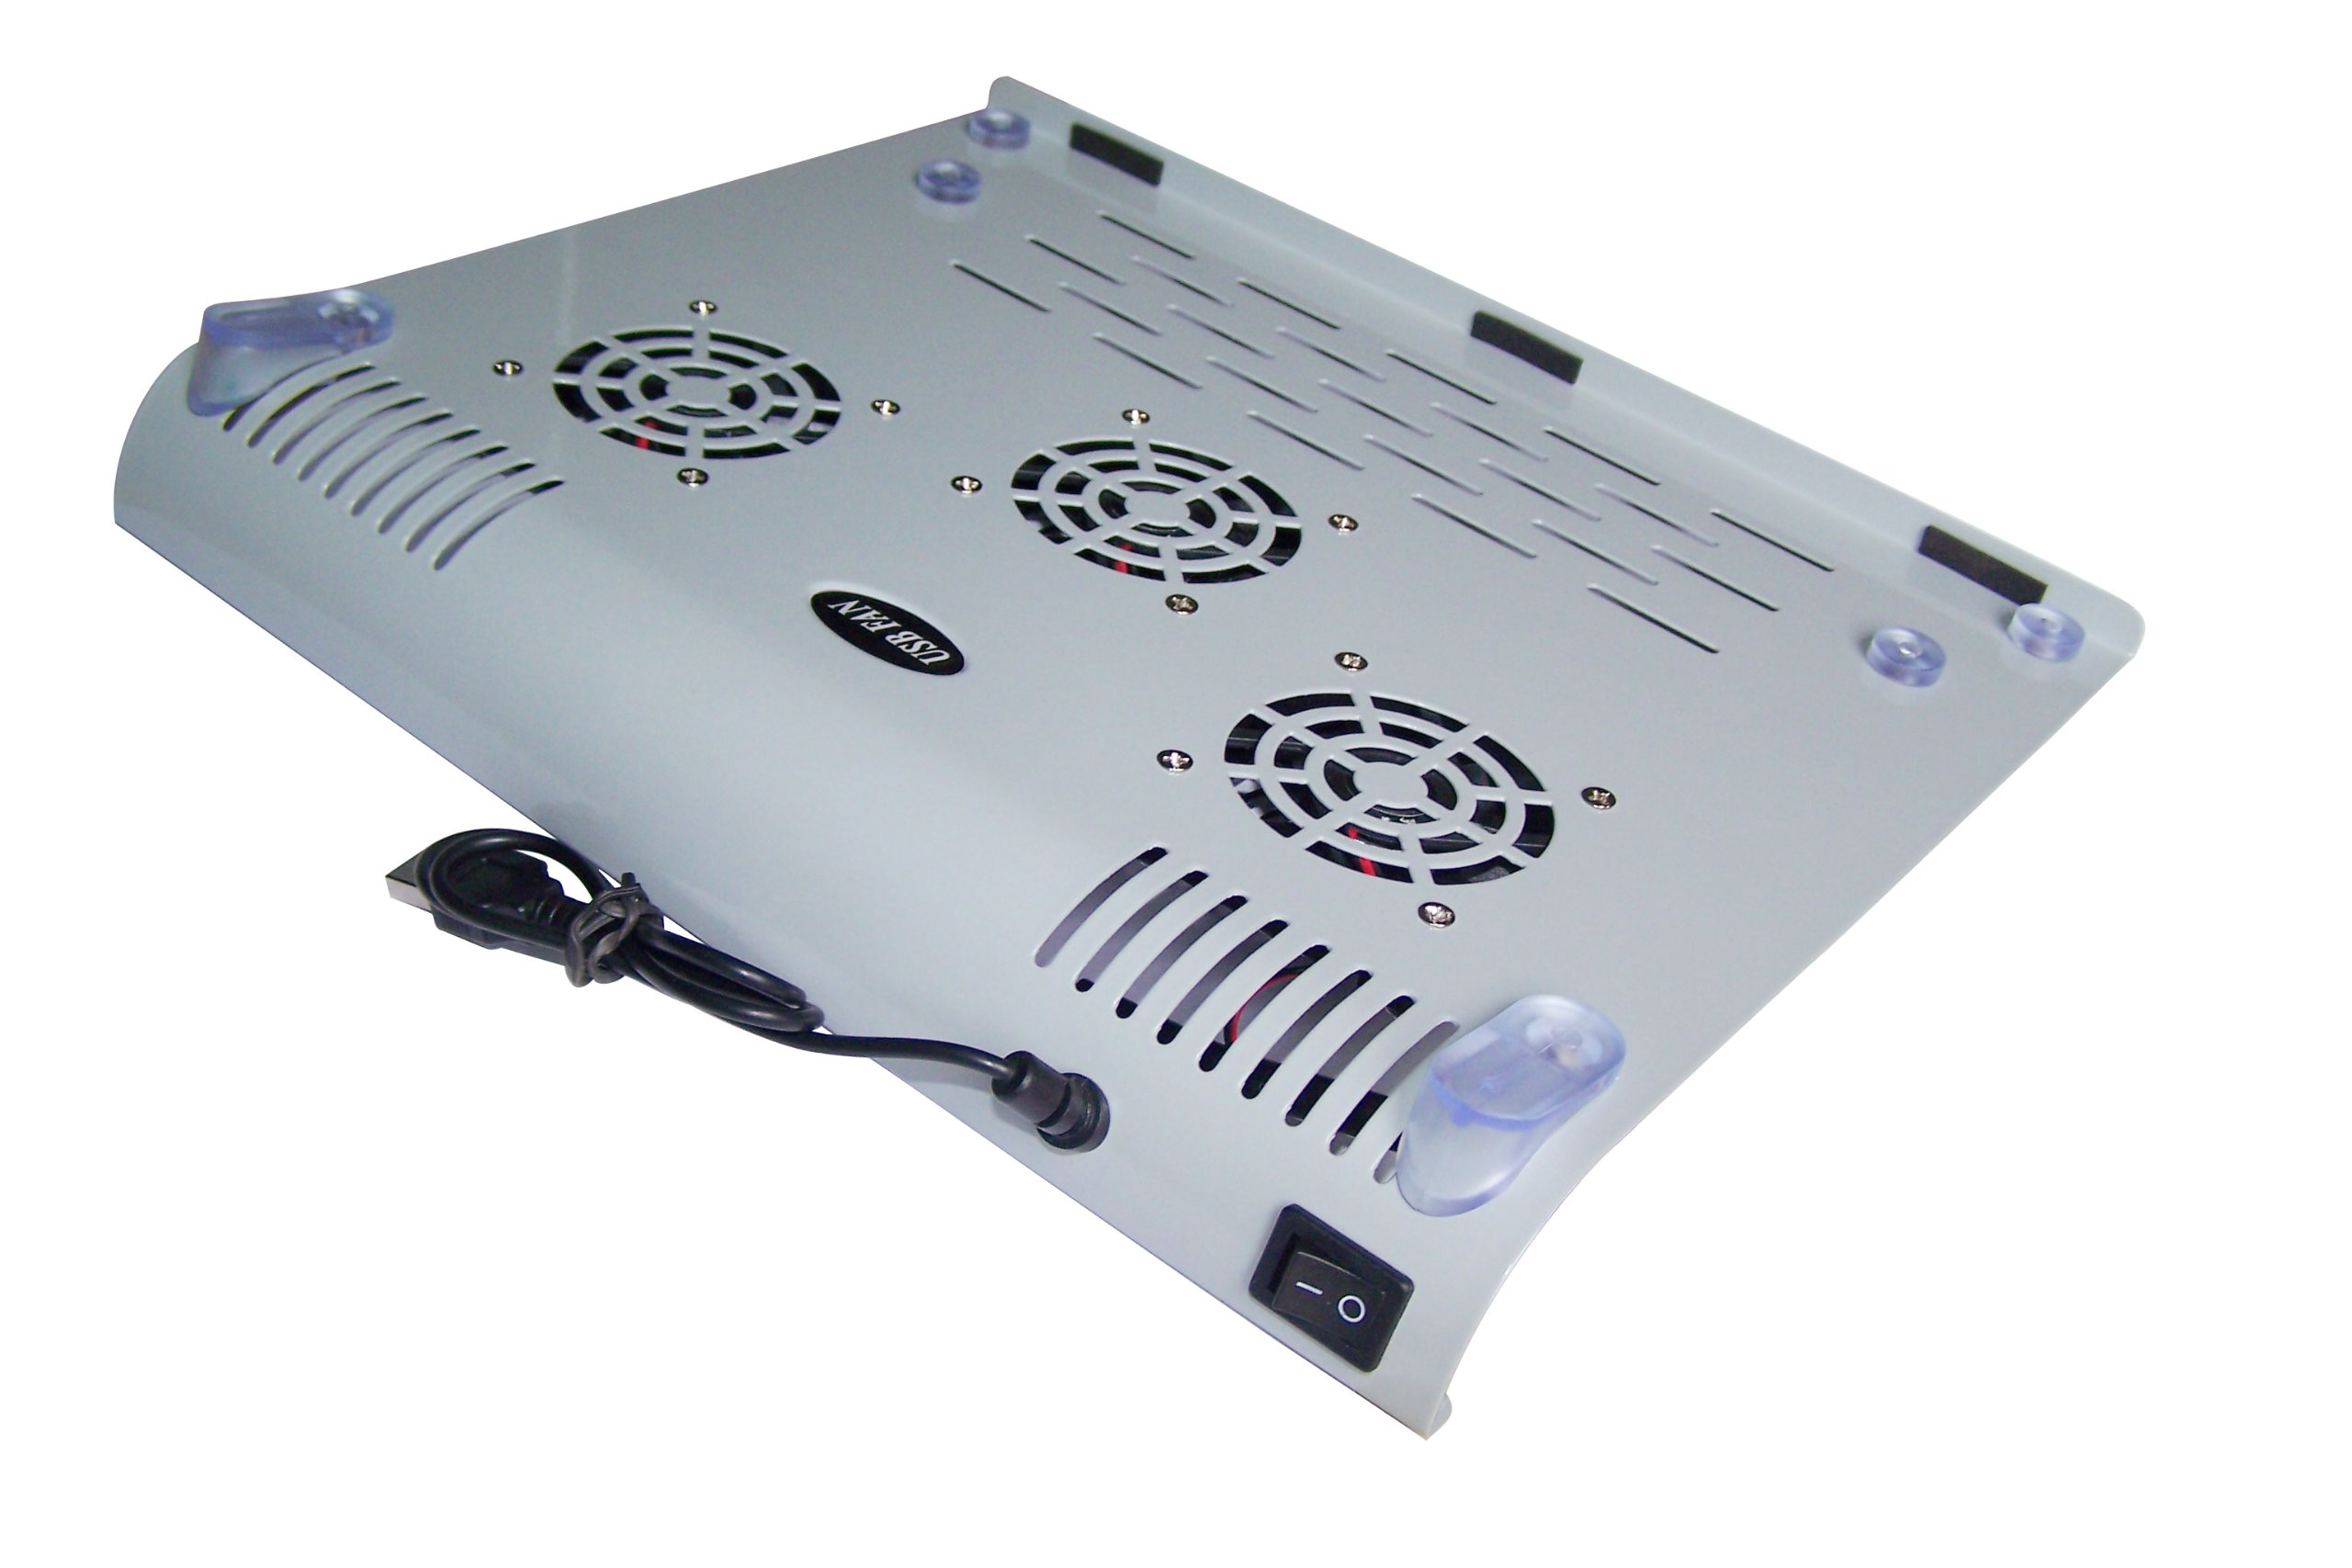 Cubeternet Premium USB Powered Metal Cooler Pad with 3 Built-in Fans for Laptop Computer